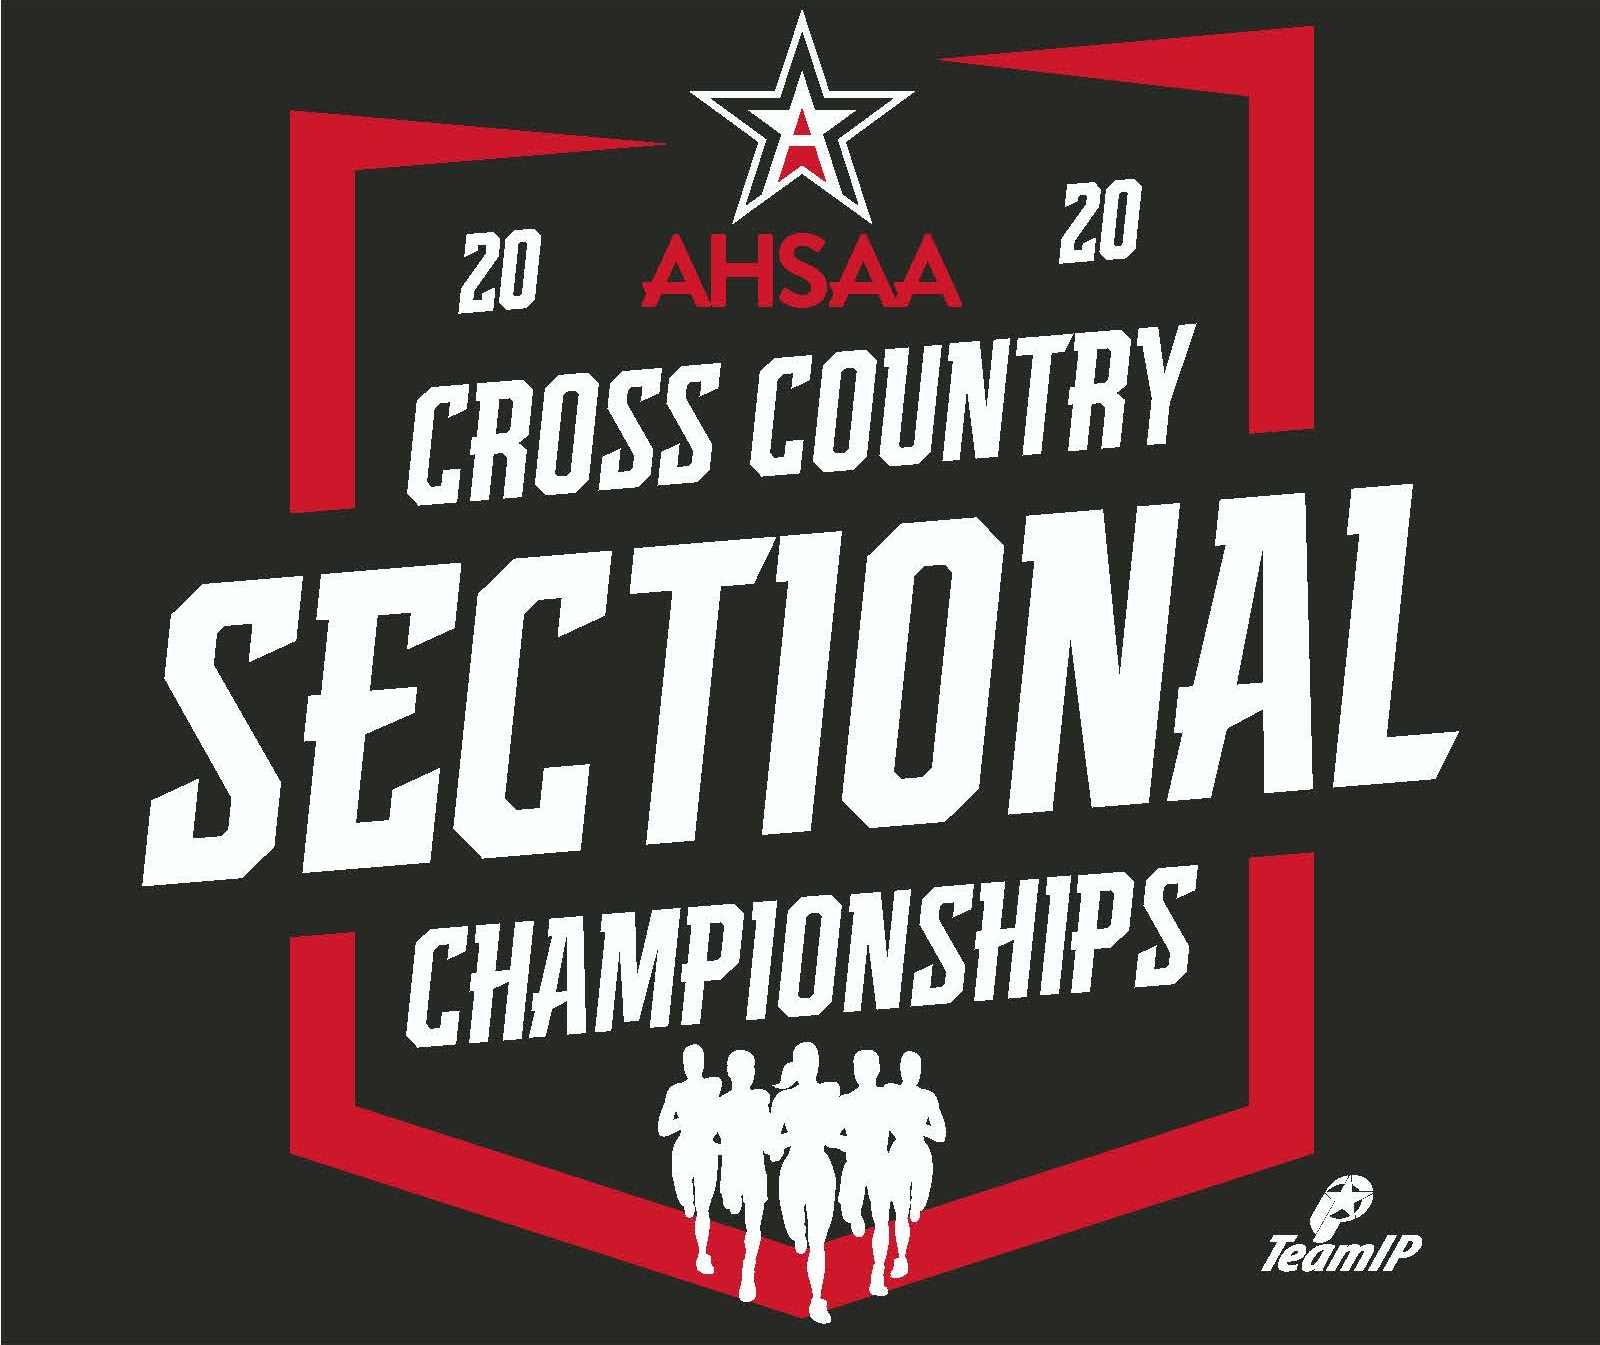 AHSAA Runners Turn in Spectacular Times at Section Meets Held Thursday